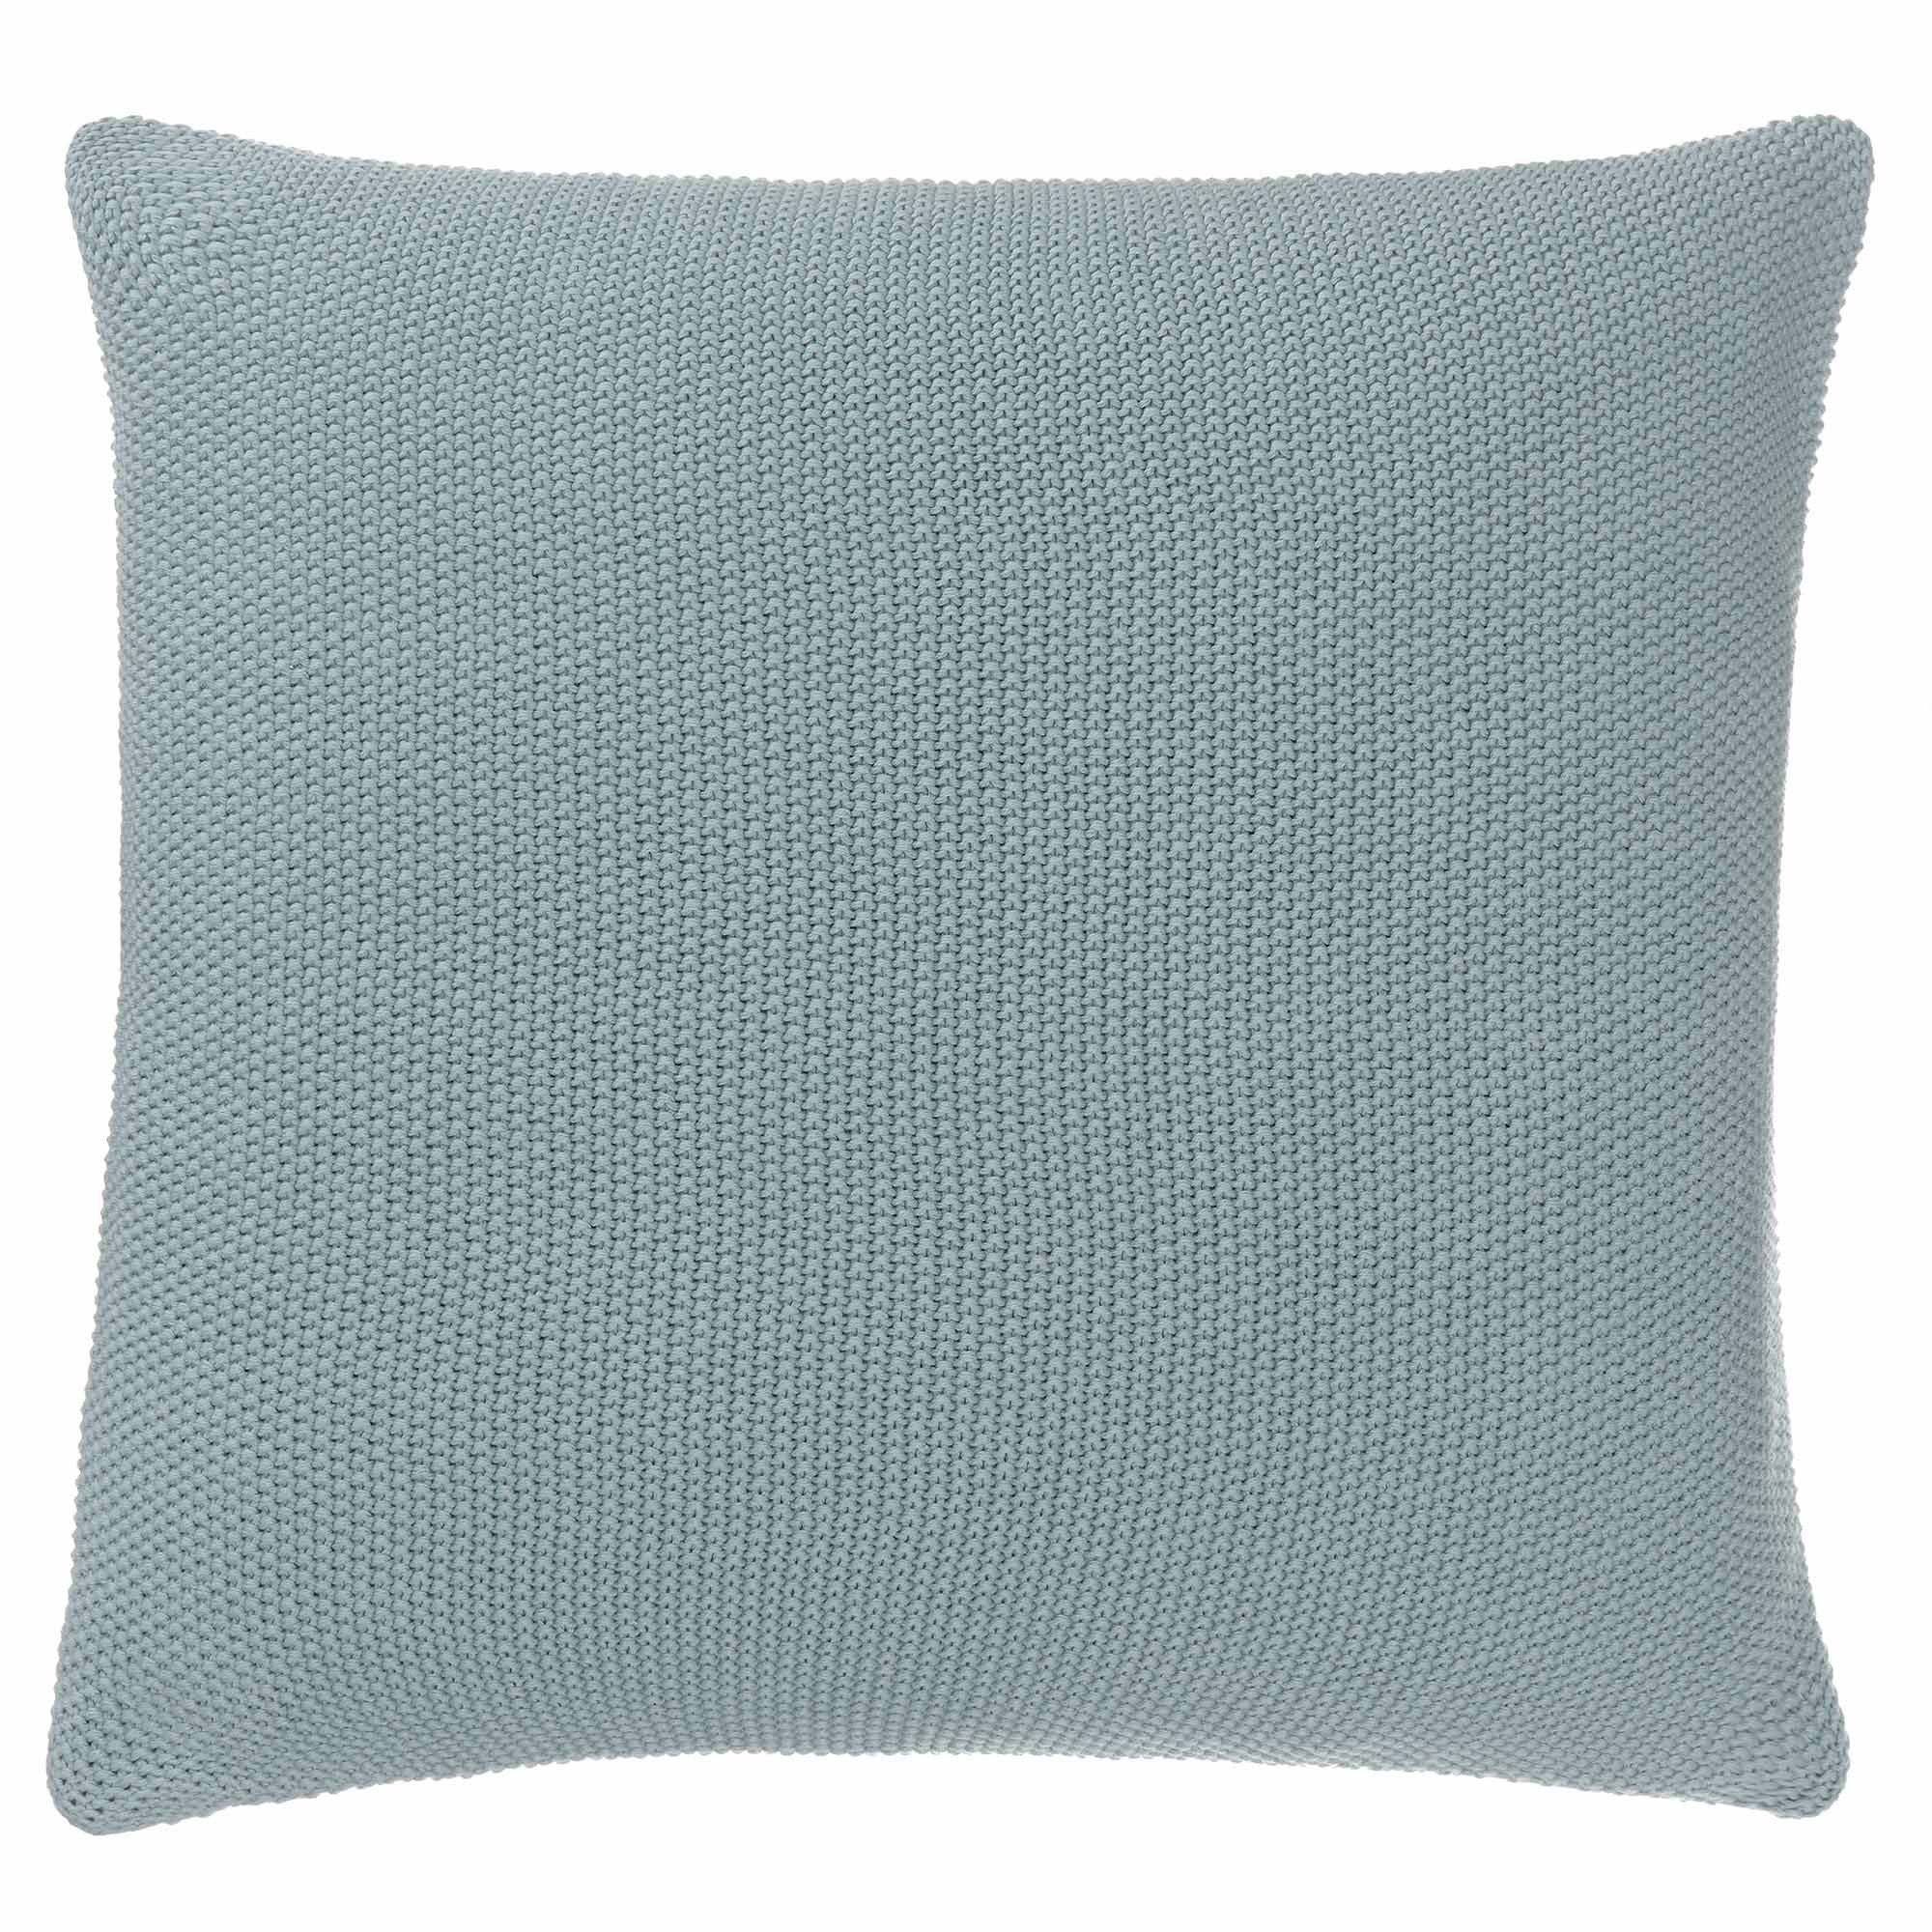 Antua cushion cover, green grey, 100% cotton